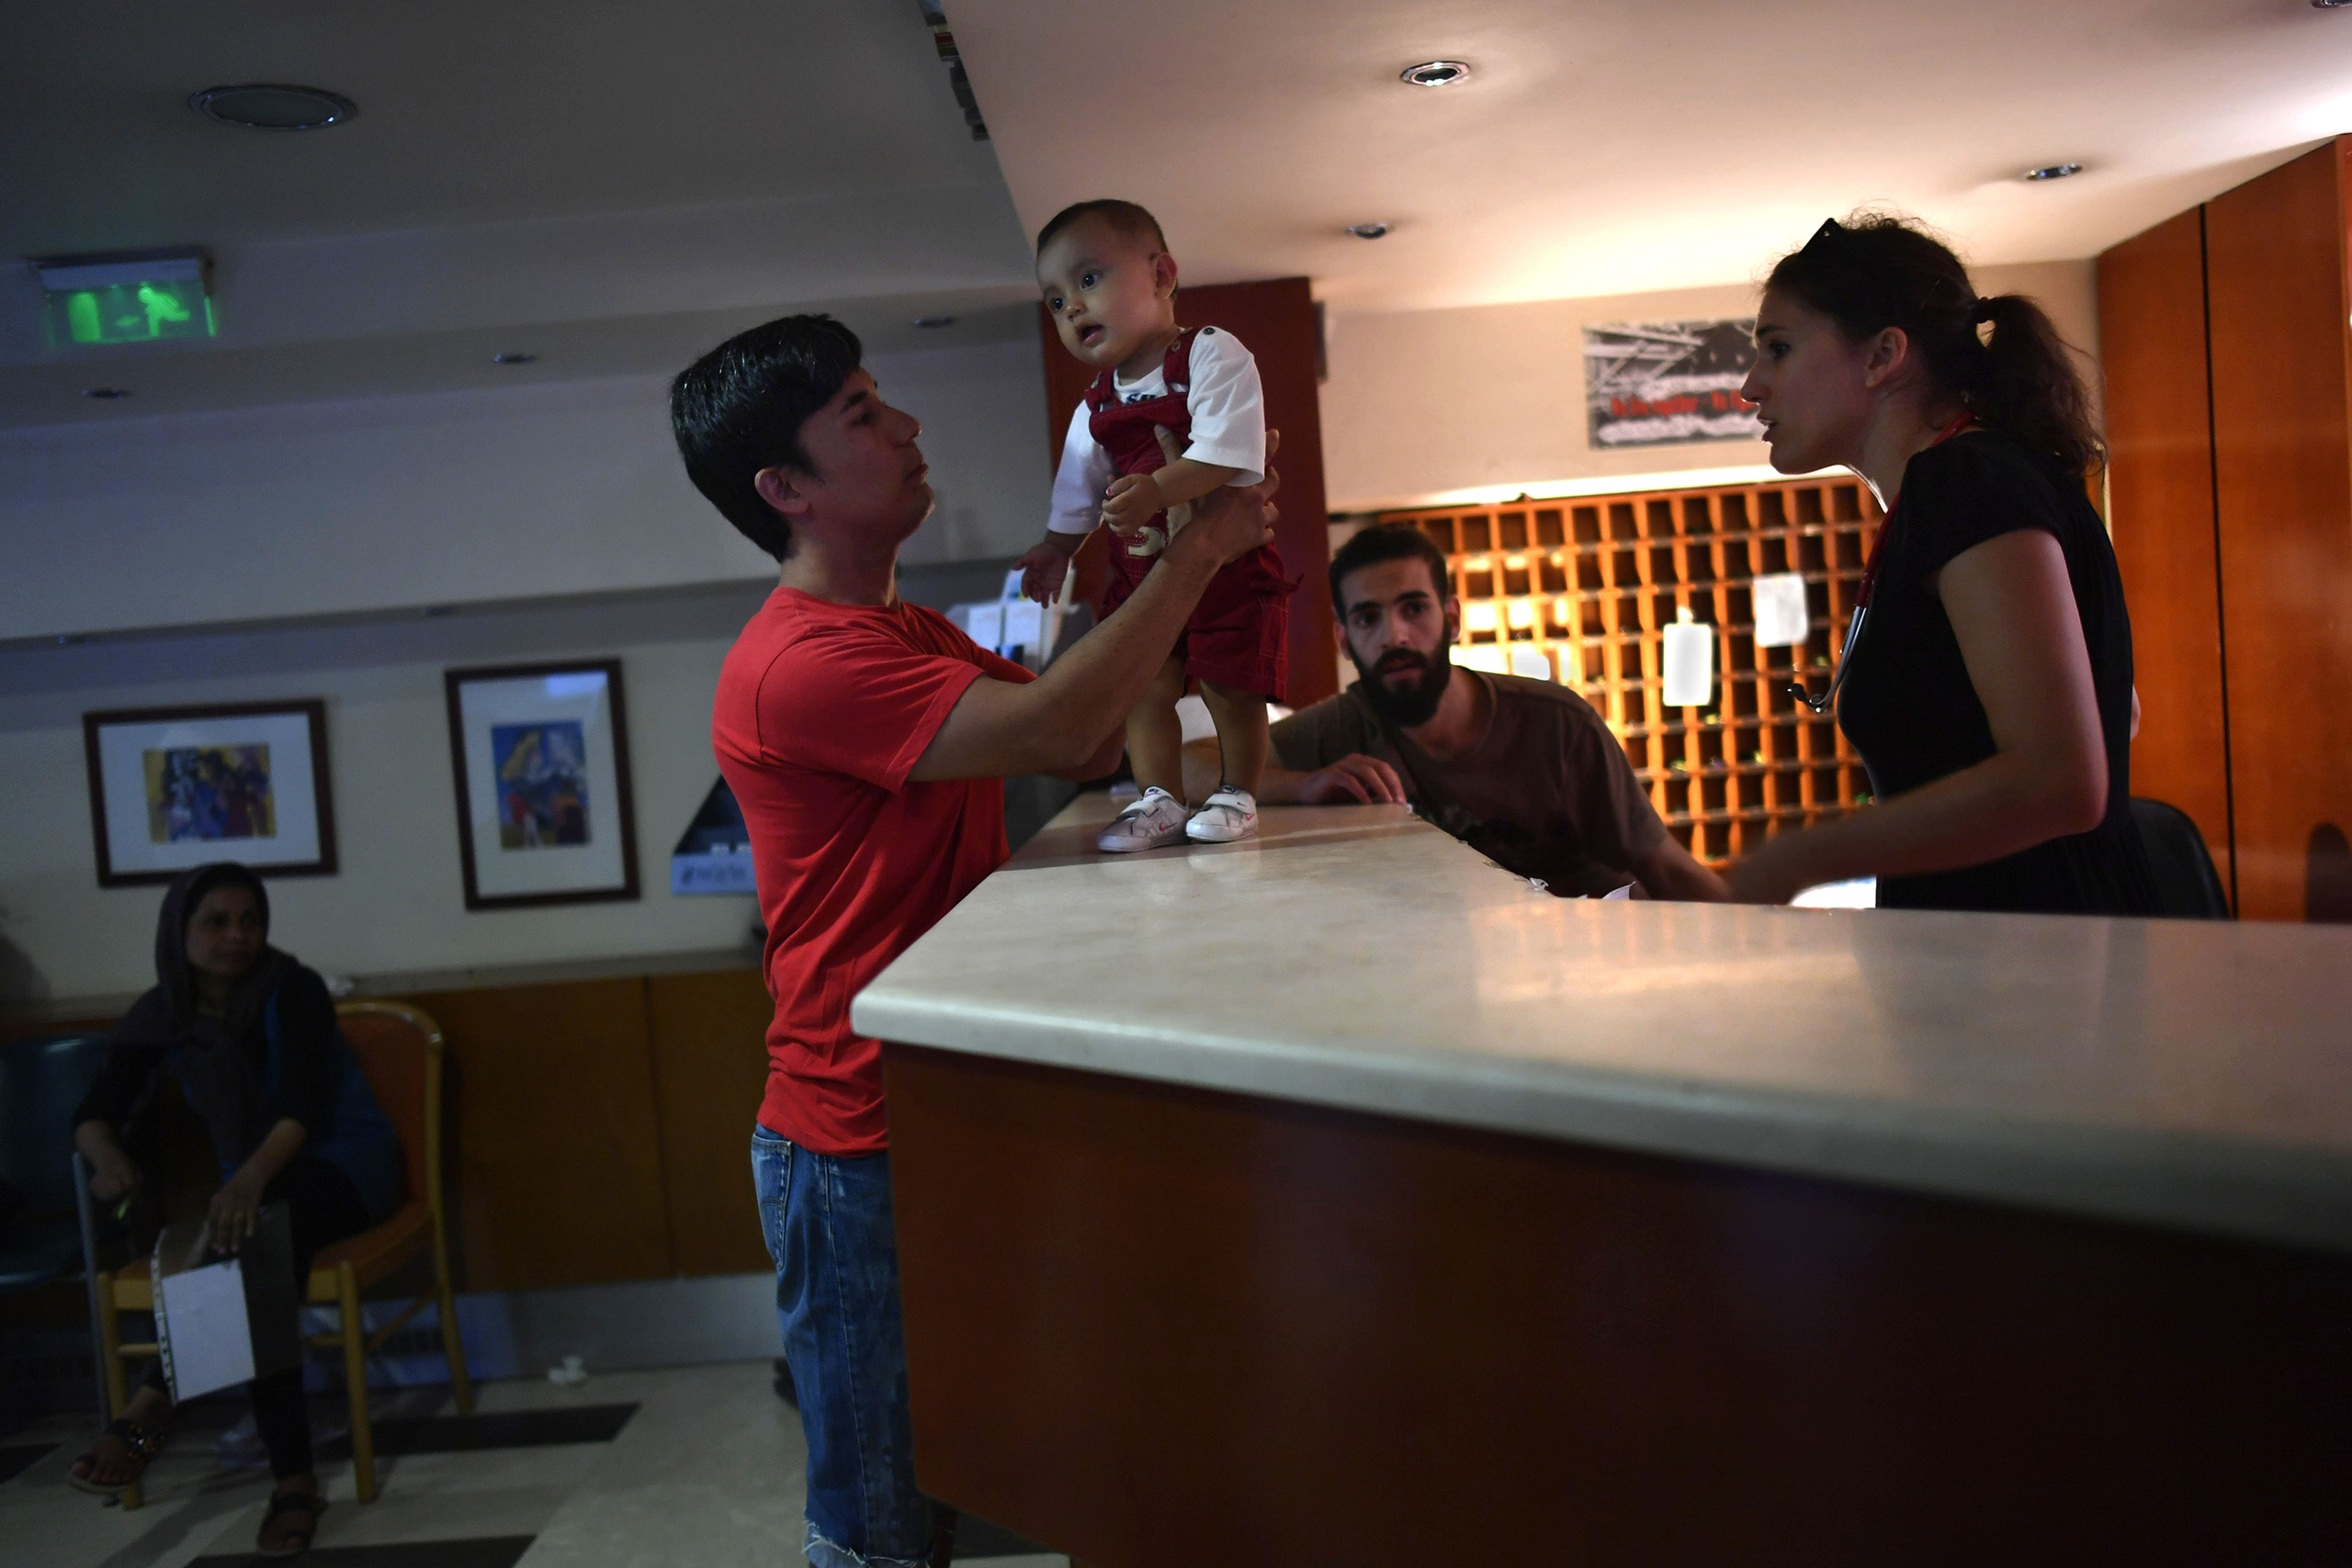 The reception desk at the City Plaza business hotel is manned by a rotating staff of international volunteers who help refugees from Syria, Iraq, Afghanistan and African countries with everything from lost keys to bus routes, school applications and medical appointments with volunteer doctors.